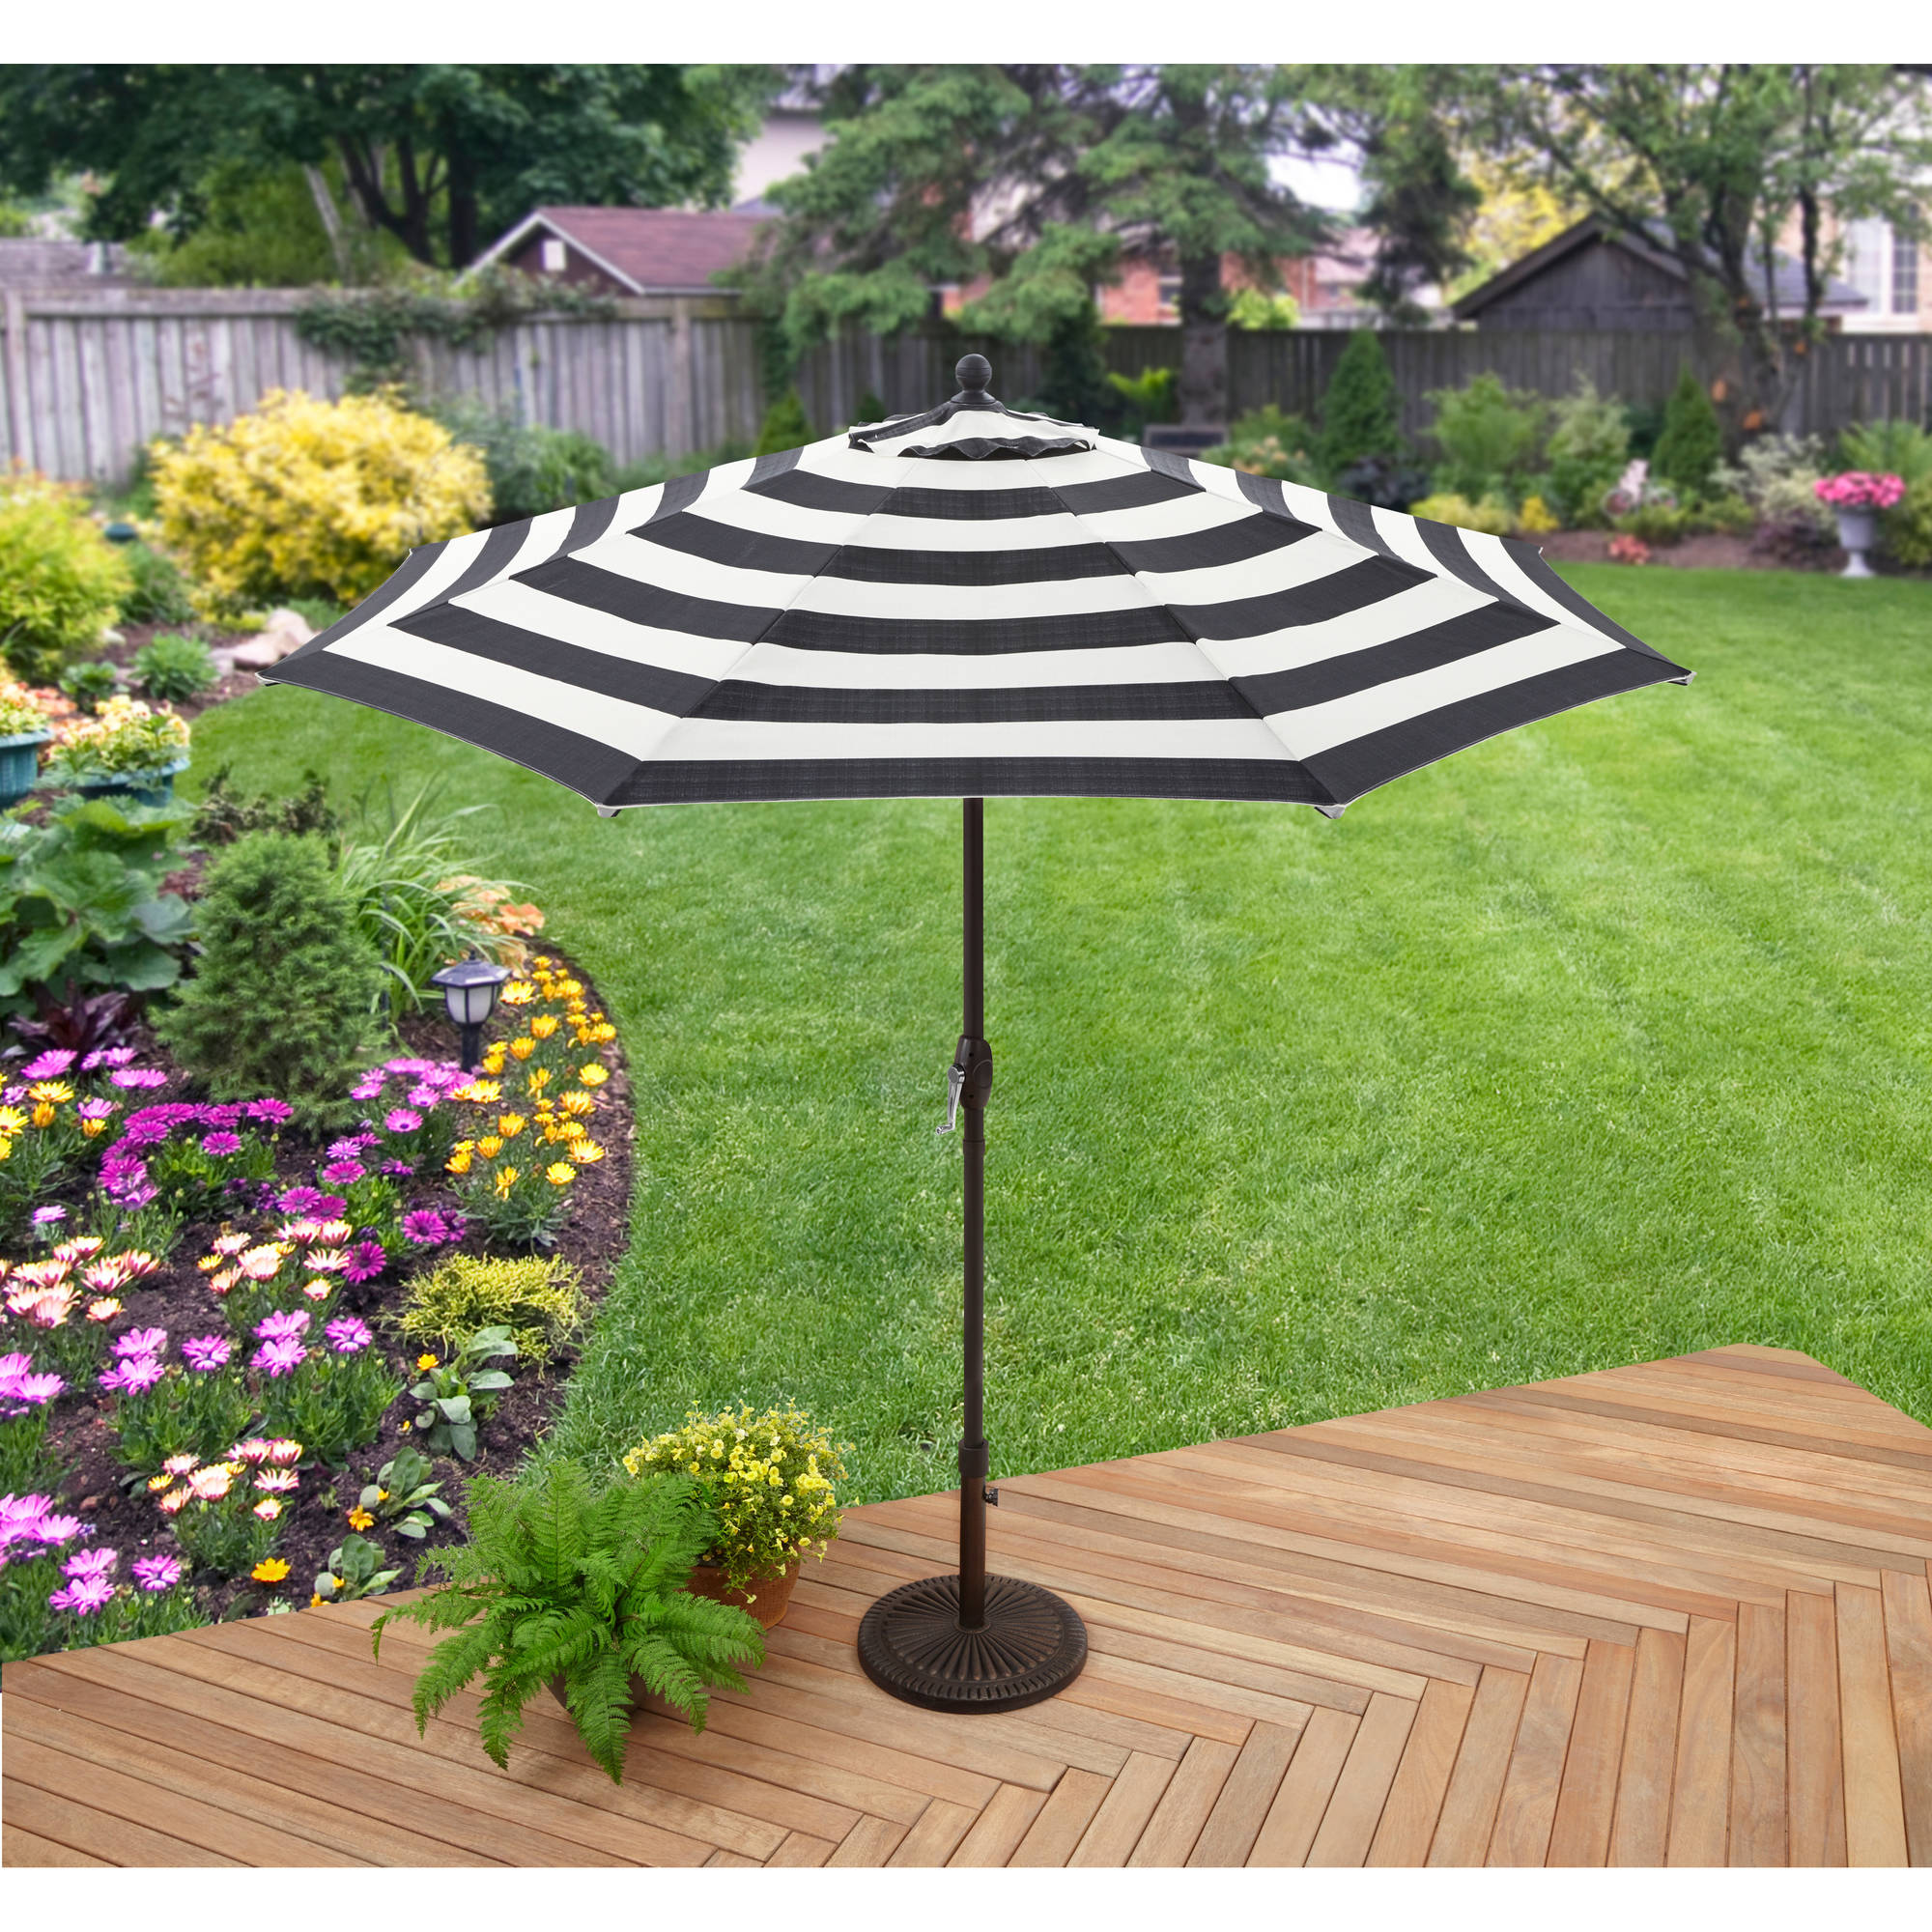 Better Homes & Gardens 9' Market Umbrella, Cabana Stripe